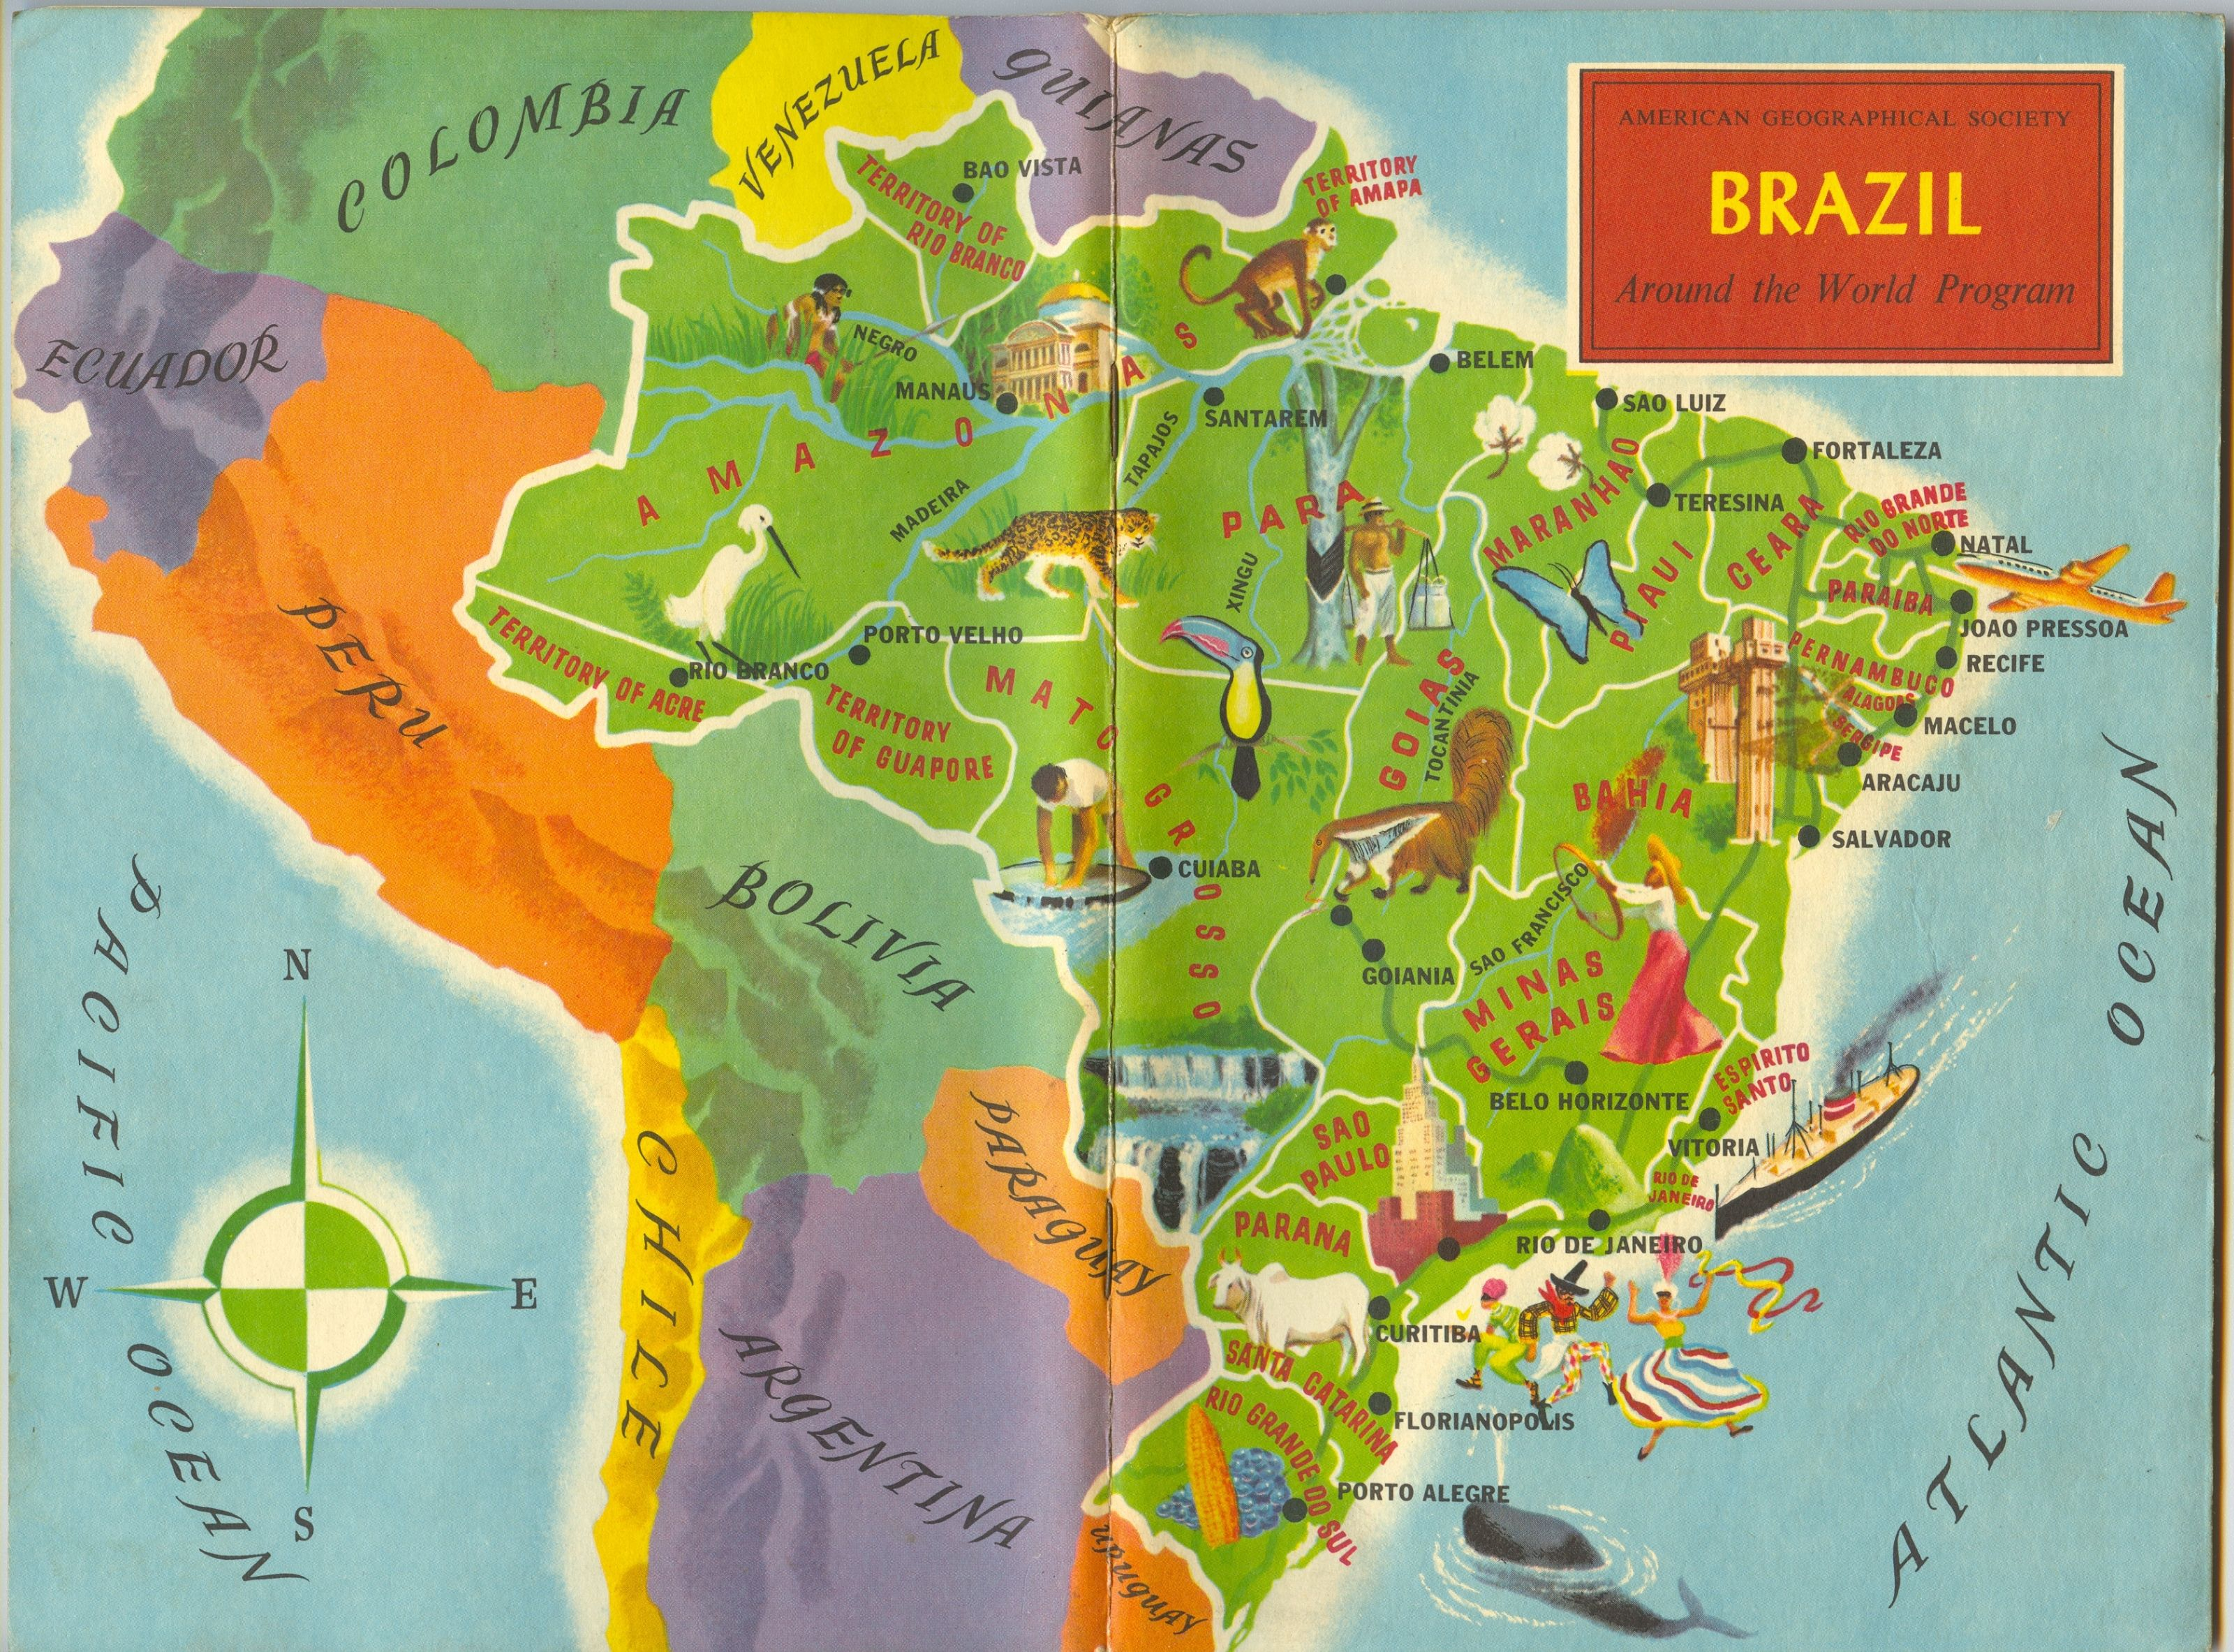 Brazil american geographical society around the world program brazil american geographical society around the world program vintage map book cover gumiabroncs Image collections